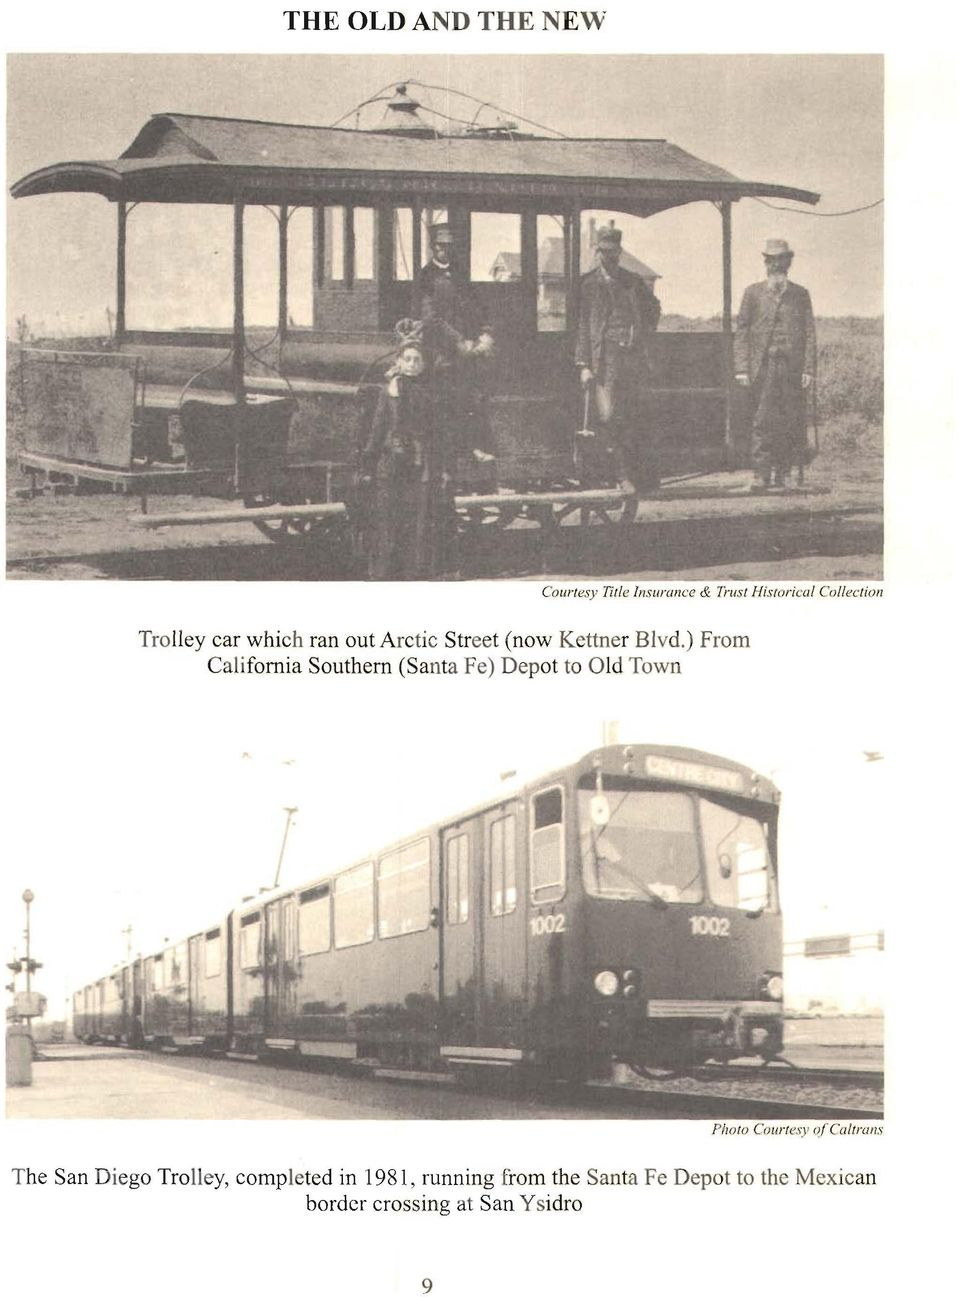 ) From California Southern (Santa Fe) Depot to Old Town Photo courtesy of calhans